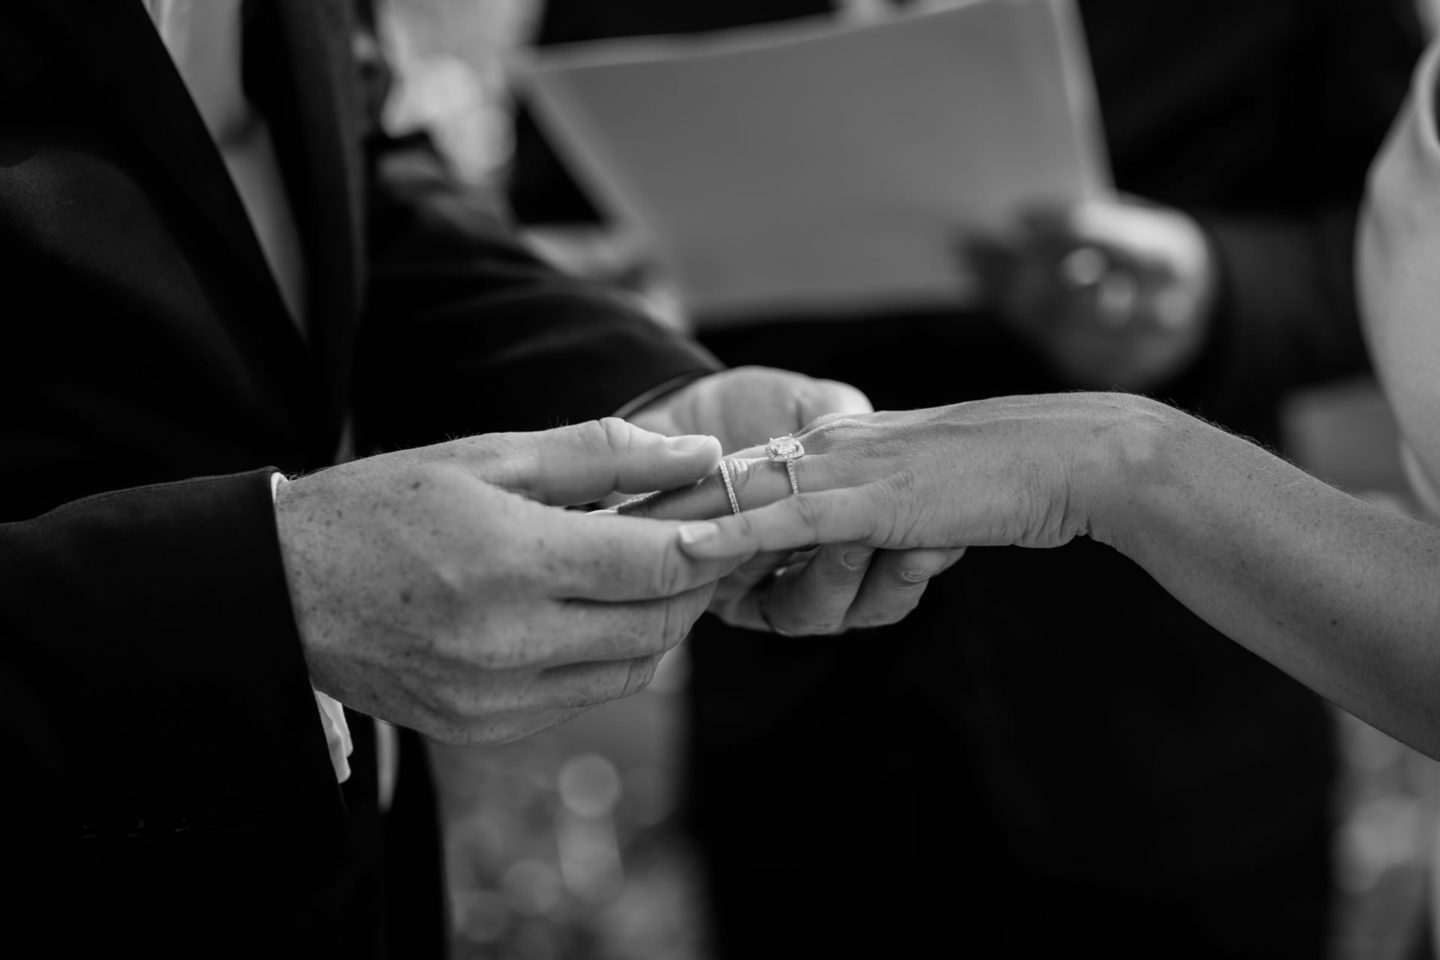 Ring :: Wedding in Positano. Sea and love :: Wedding photographer based in Florence Tuscany Italy :: photo-26 :: Ring